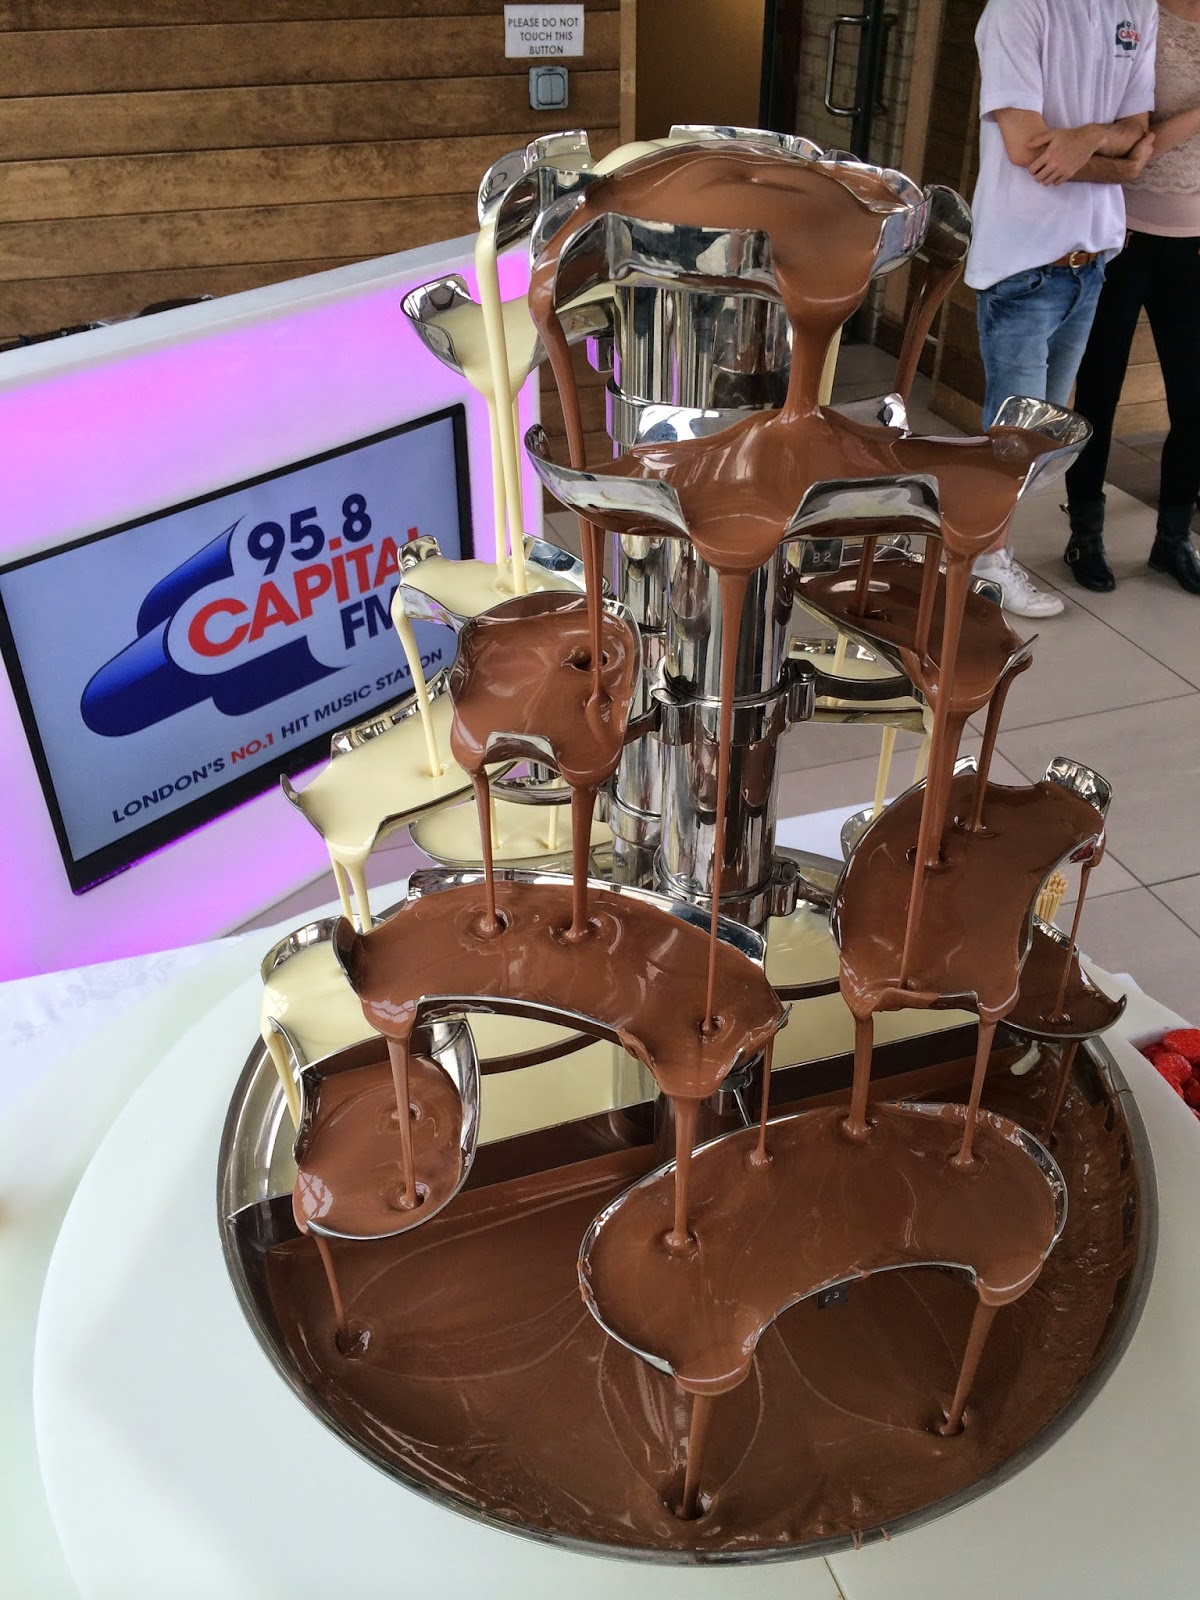 bourjois-event-capital-fm-chocolate-fountain